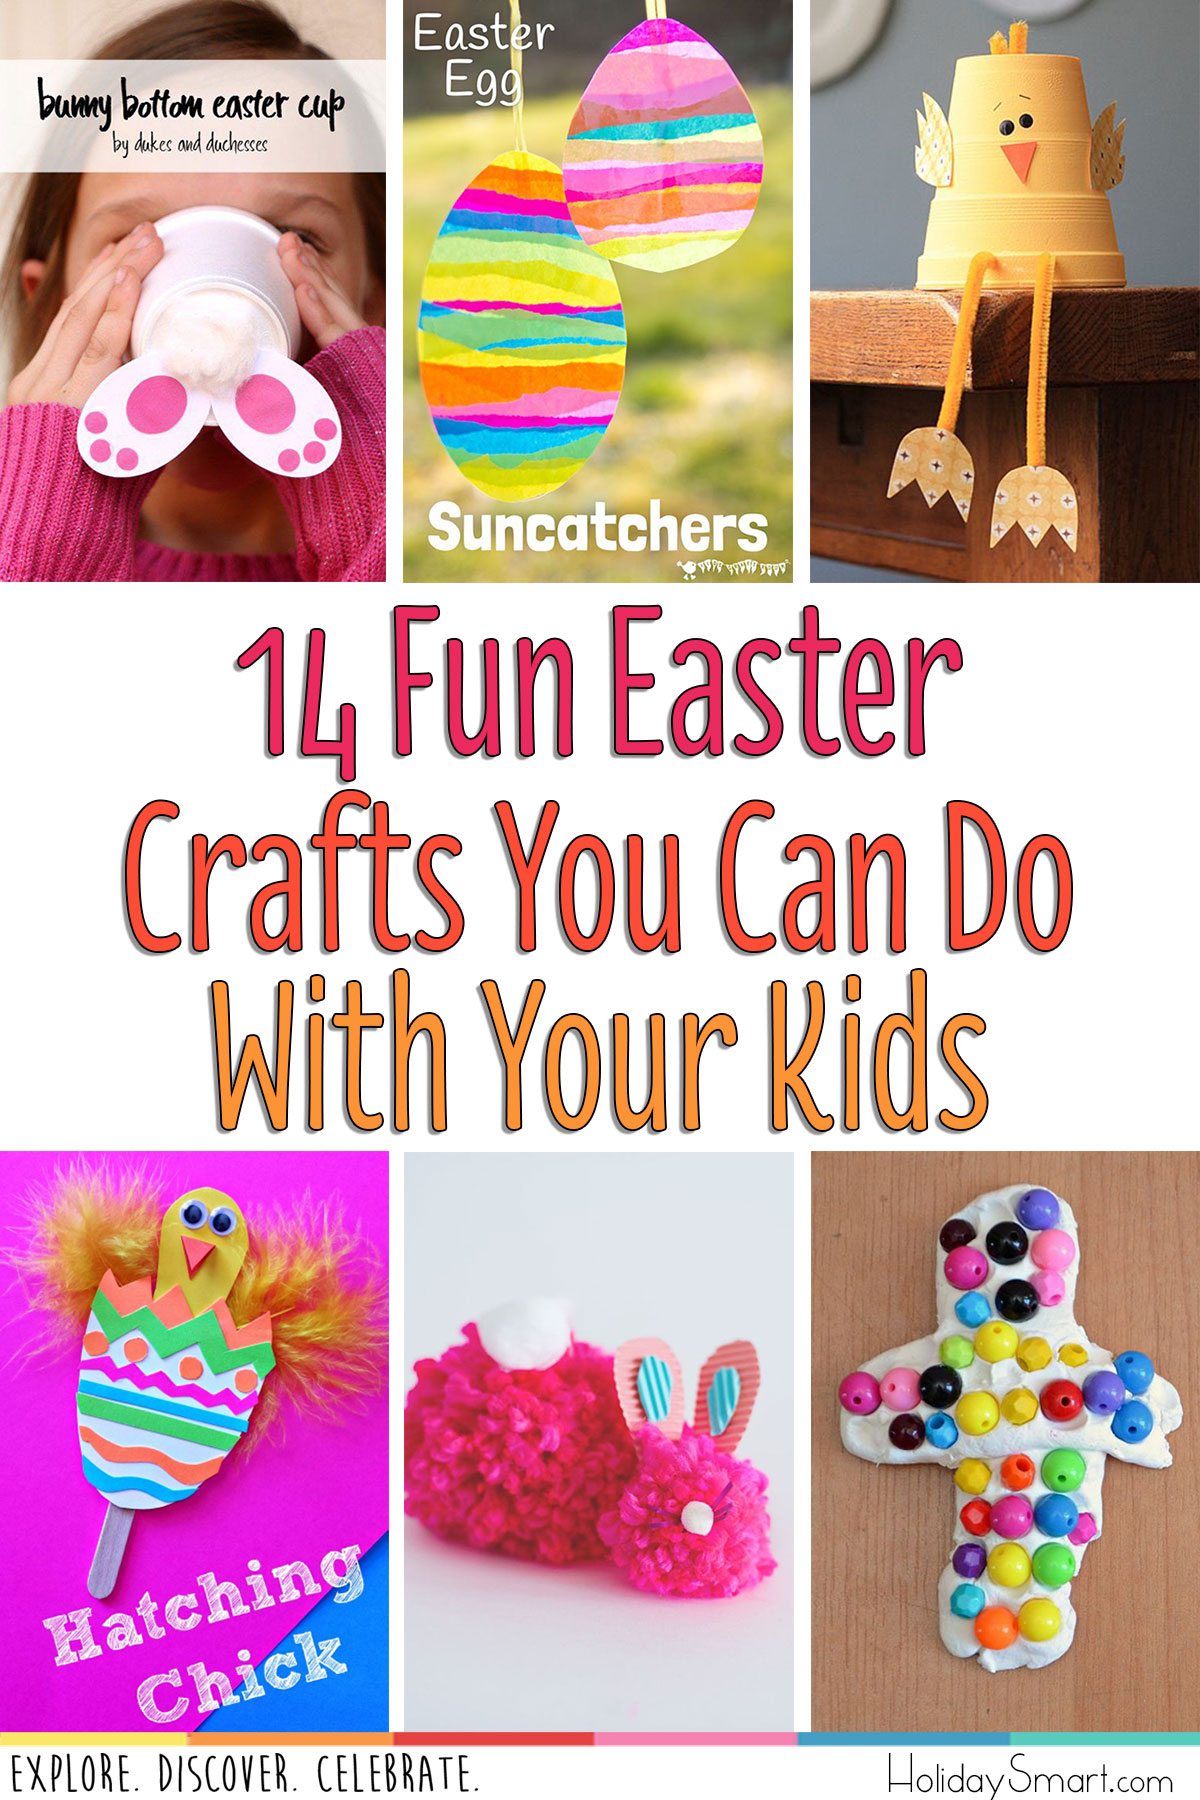 14 Fun Easter Crafts You Can Do With Your Kids